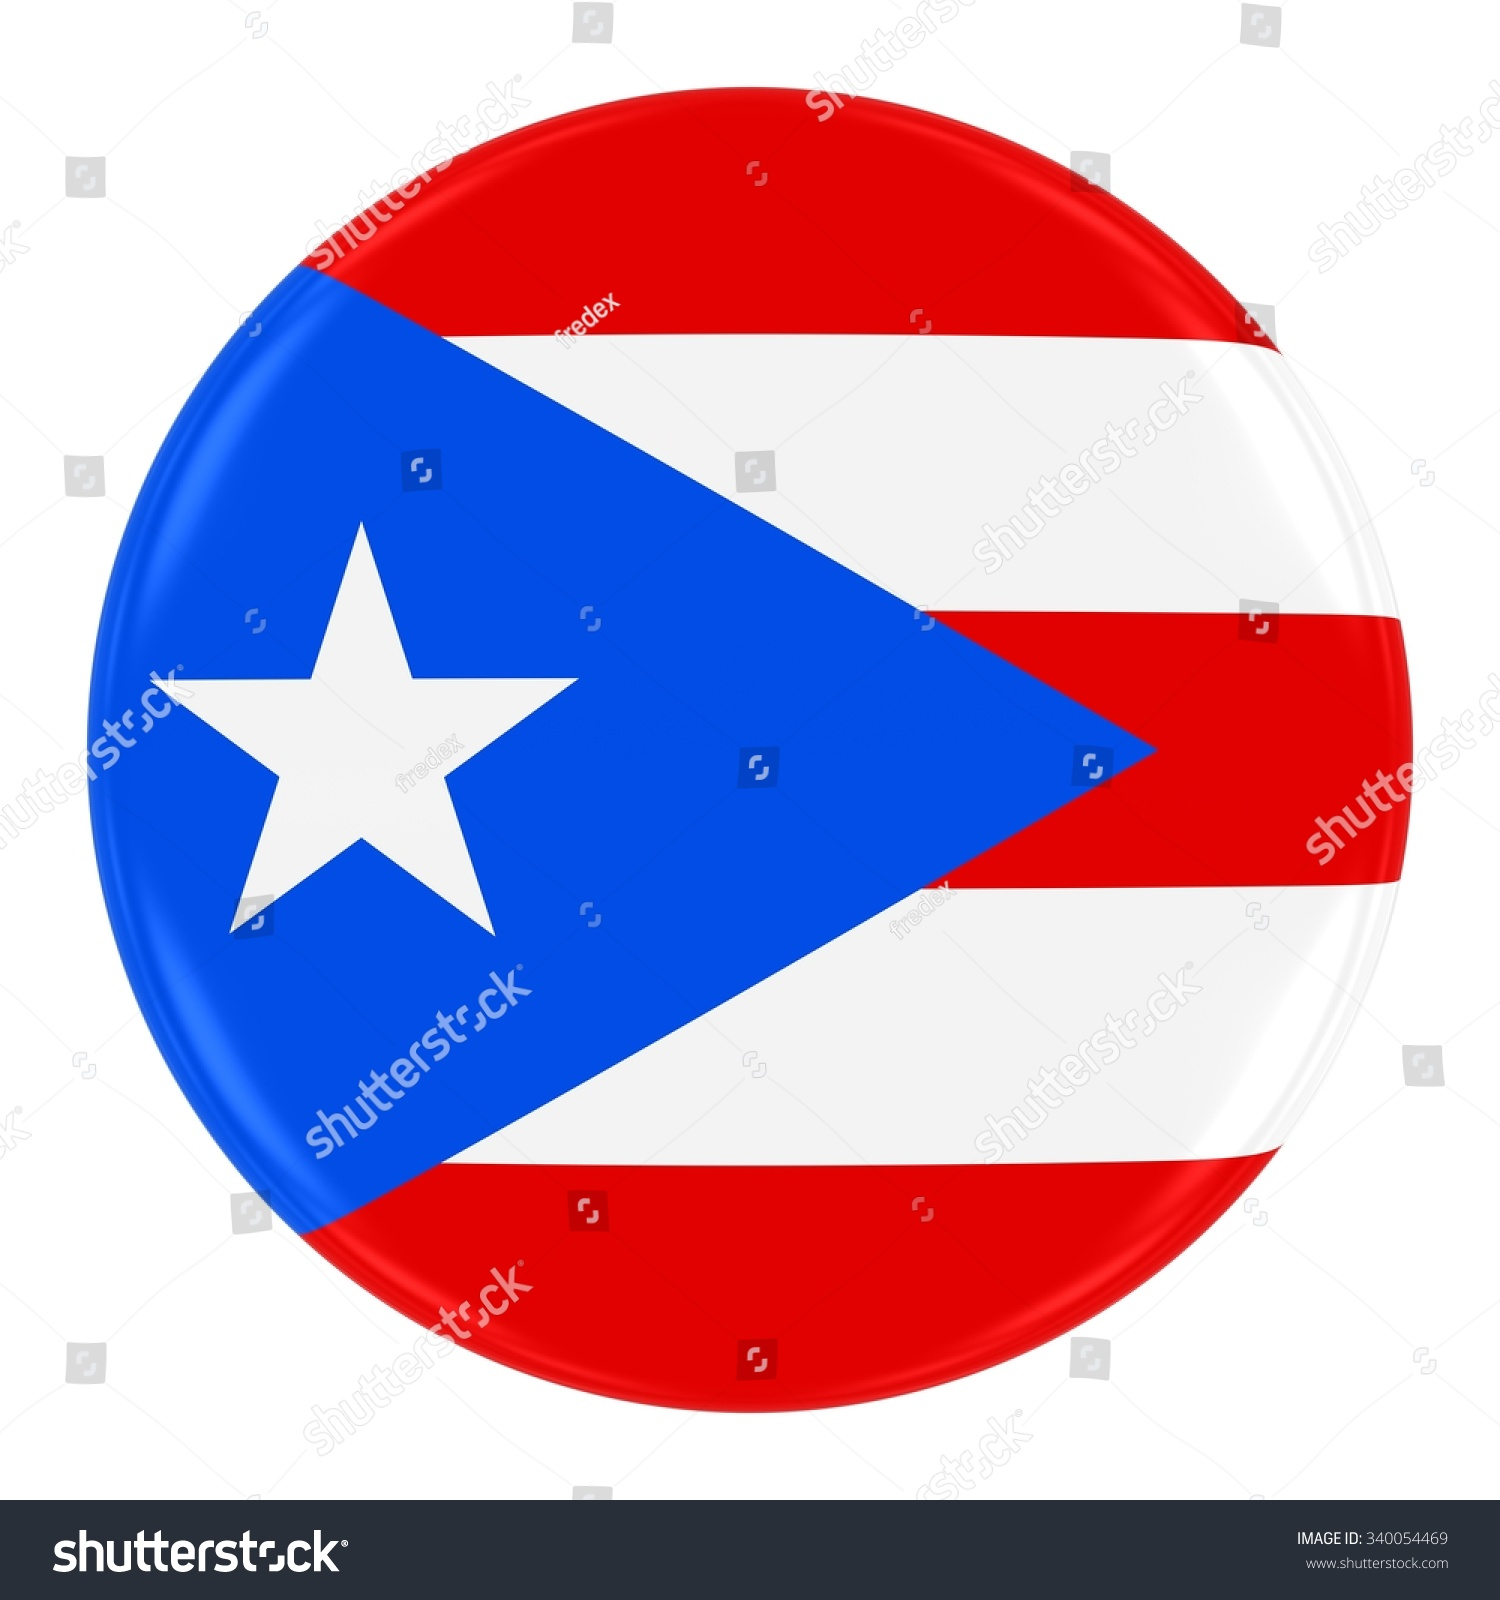 Puerto rican flag badge flag puerto stock illustration 340054469 puerto rican flag badge flag of puerto rico button isolated on white biocorpaavc Choice Image